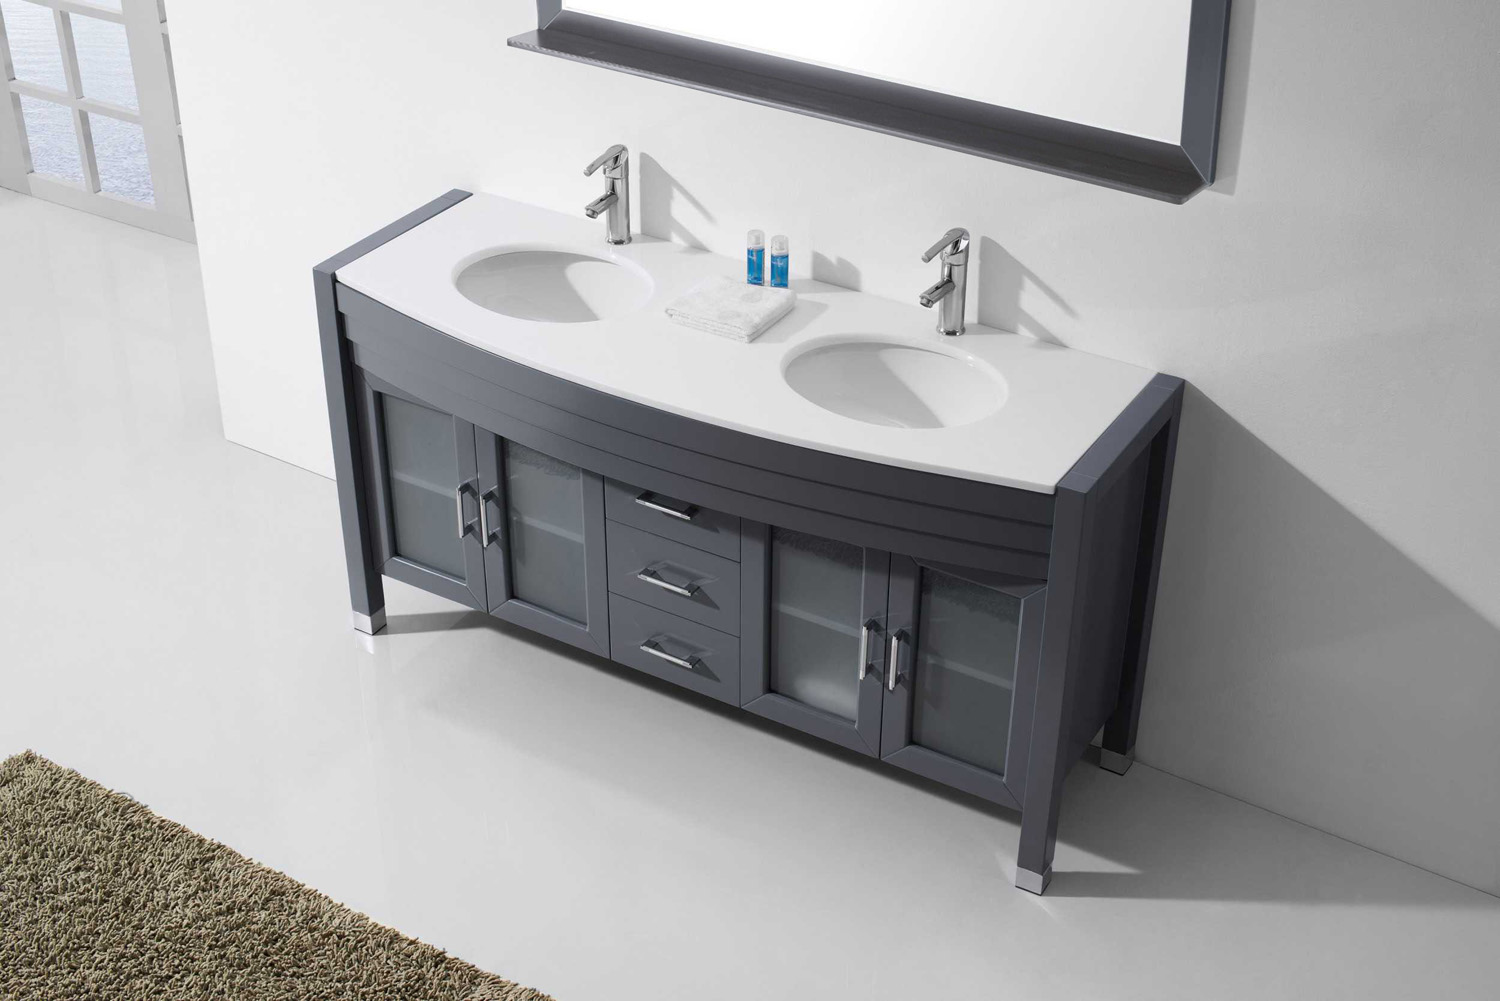 Pros And Cons Of Double Sink Vs Single Sink Vanities Luxury Living Direct Bathroom Vanity Blog Luxury Living Direct